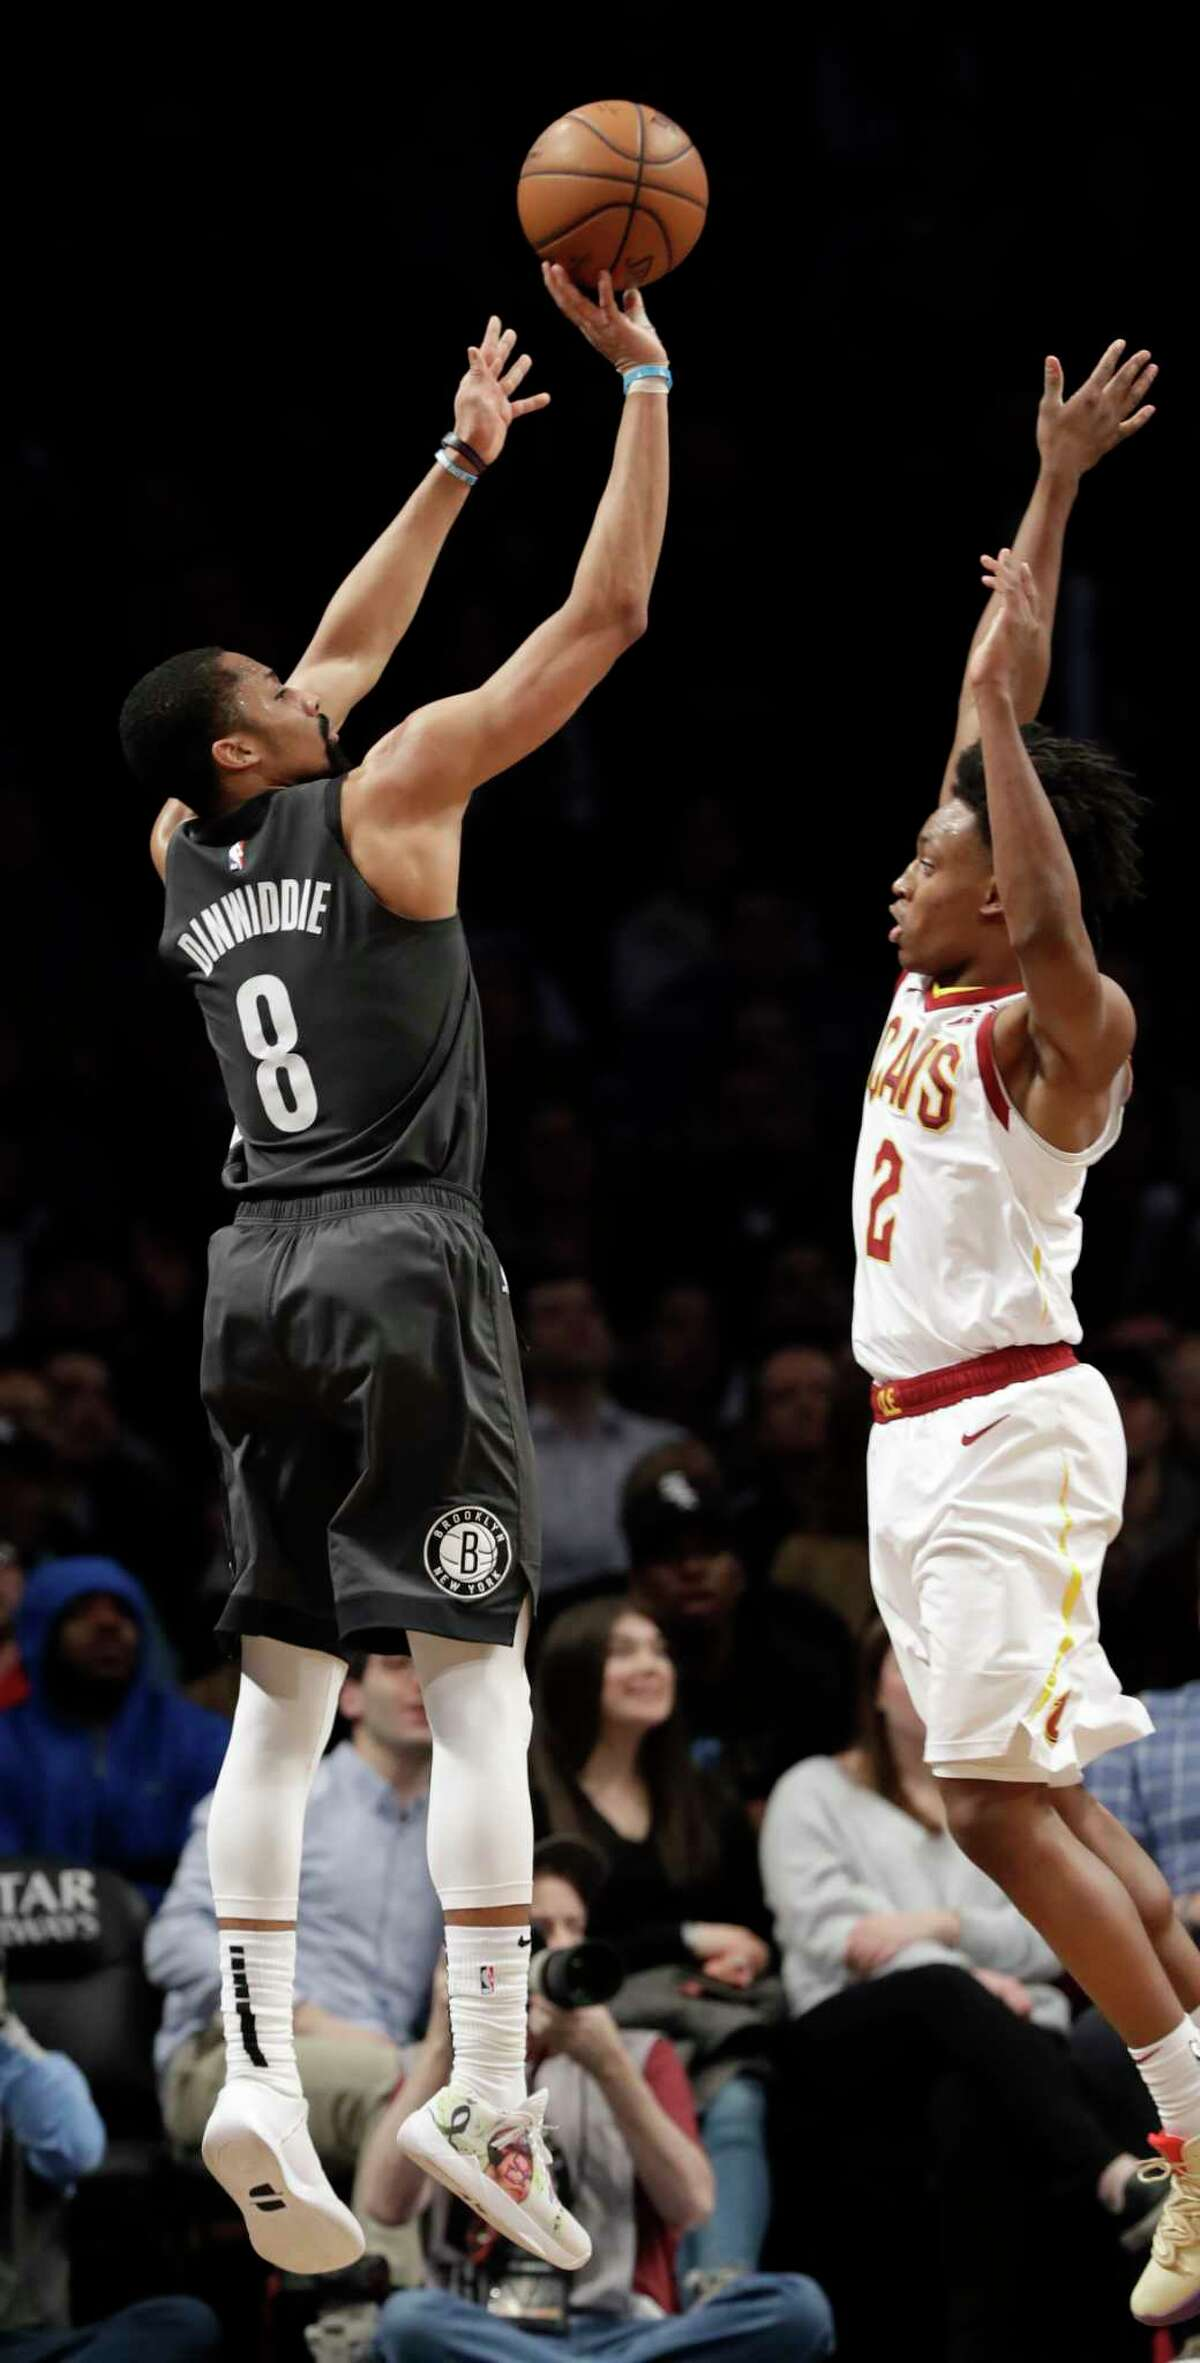 Brooklyn Nets guard Spencer Dinwiddie (8) shoots a 3-pointer as Cleveland Cavaliers guard Collin Sexton (2) defends during the second half of an NBA basketball game Wednesday, March 6, 2019, in New York. (AP Photo/Kathy Willens)